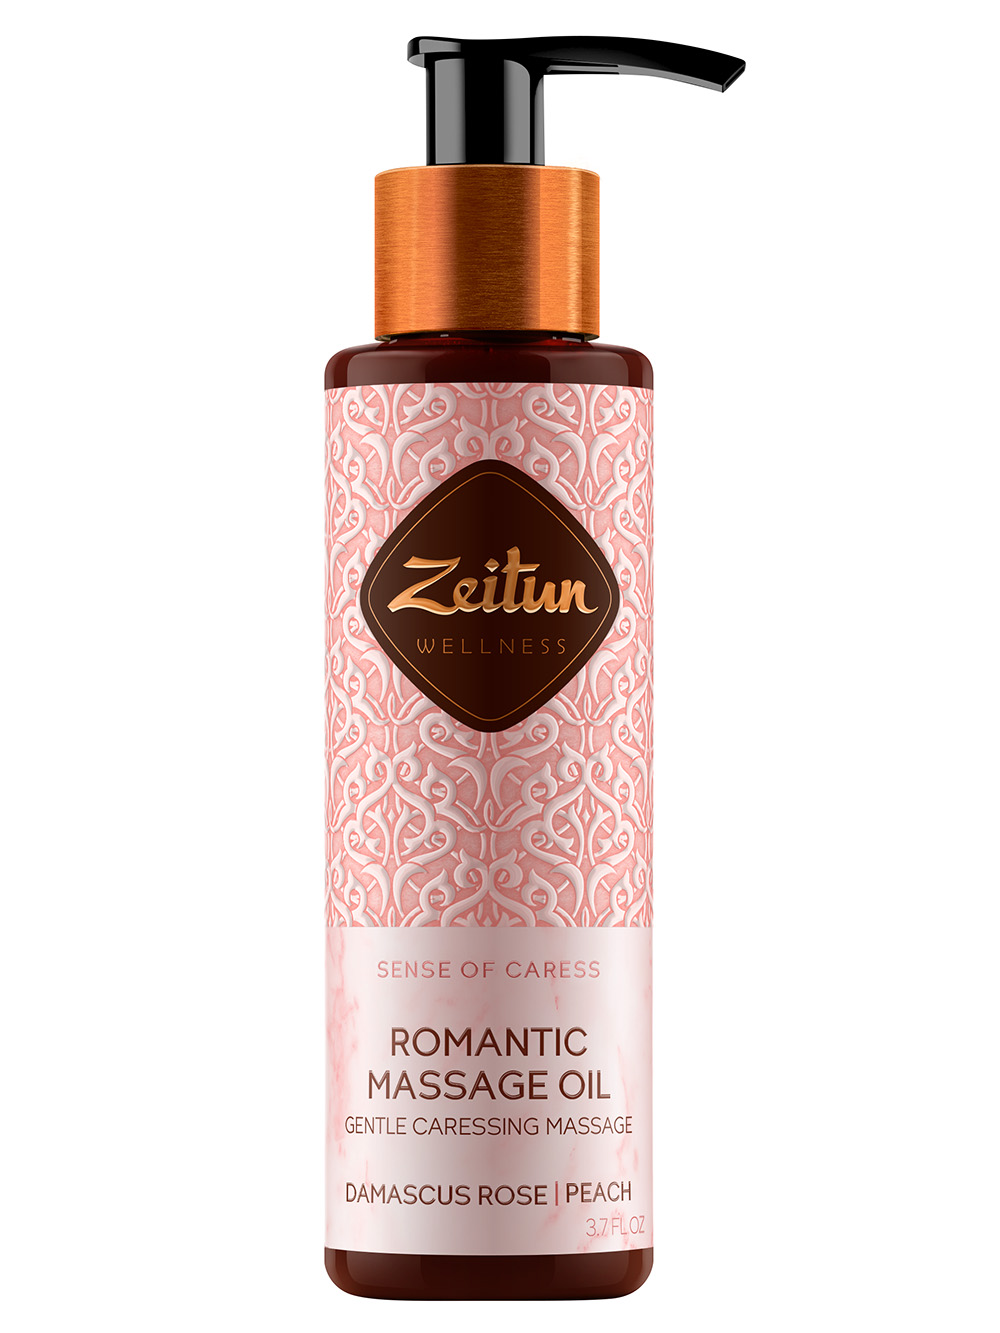 Sense Of Caress massage oil